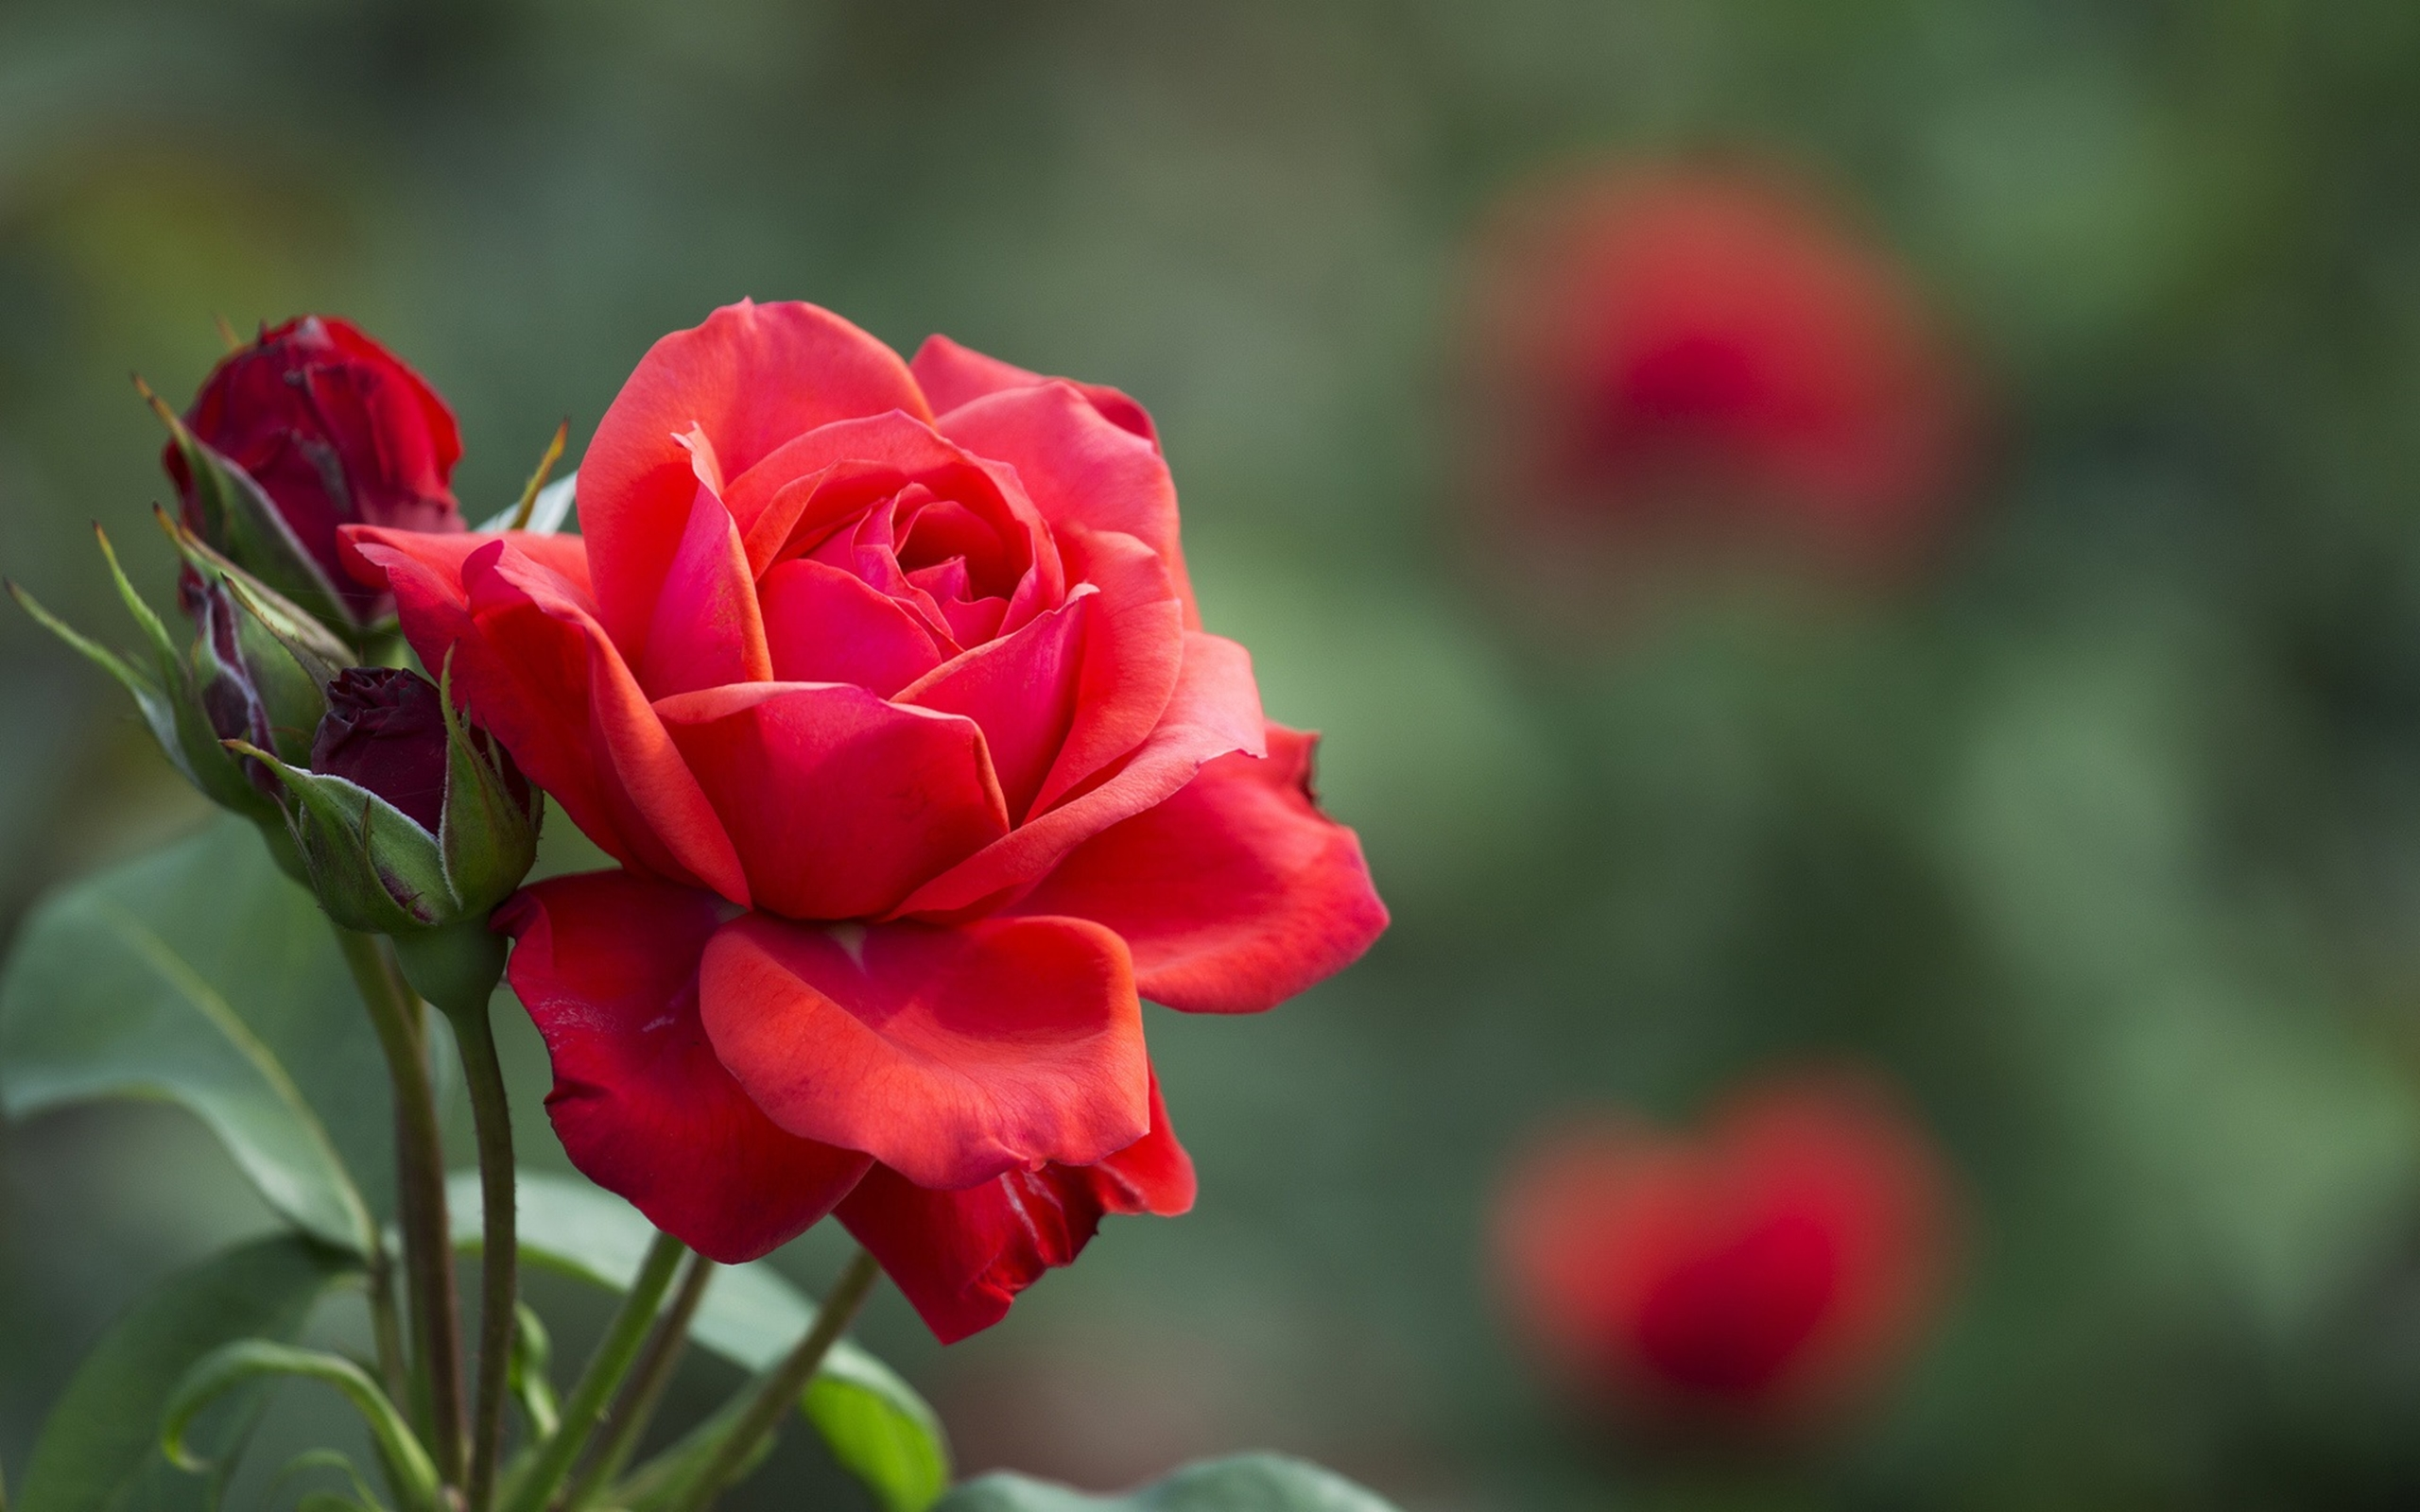 Red-rose-flower-buds-leaves-2560x1600